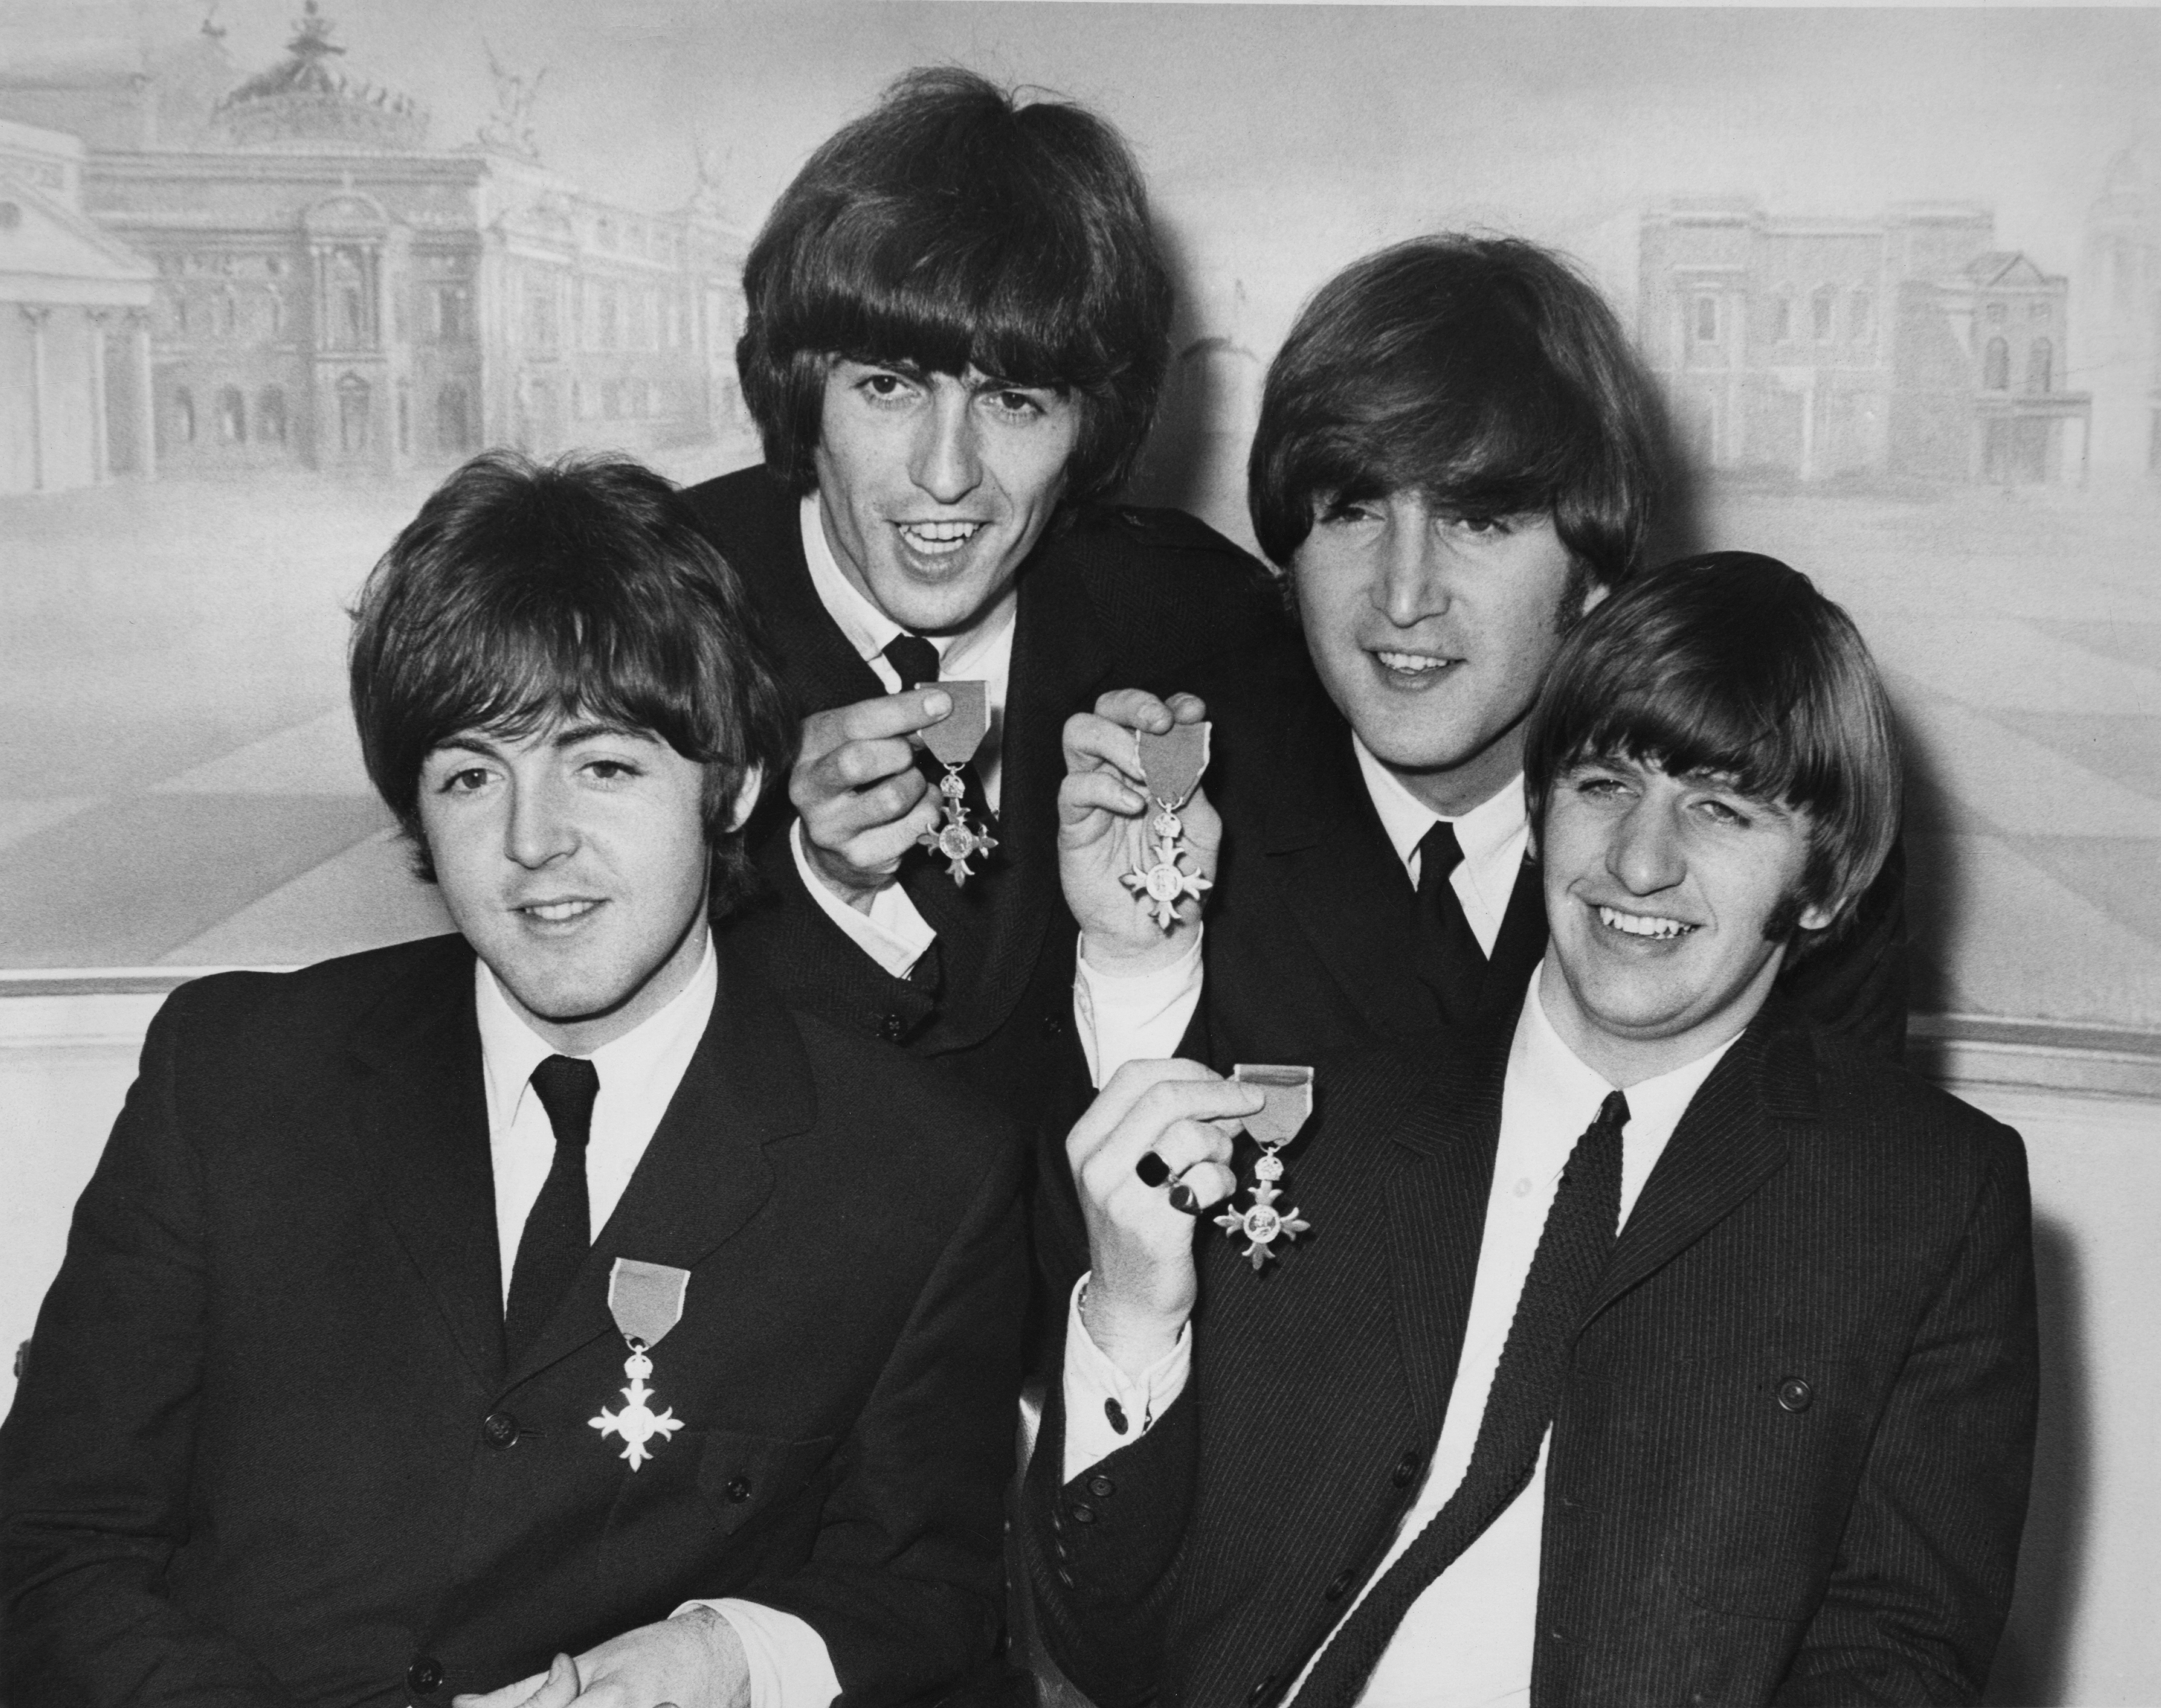 British rock group the Beatles hold a press reception at the Saville Theatre in London after each received an MBE at Buckingham Palace, 26th October 1965. From left to right, Paul McCartney, George Harrison, John Lennon, Ringo Starr. (Photo by Central Press/Hulton Archive/Getty Images)